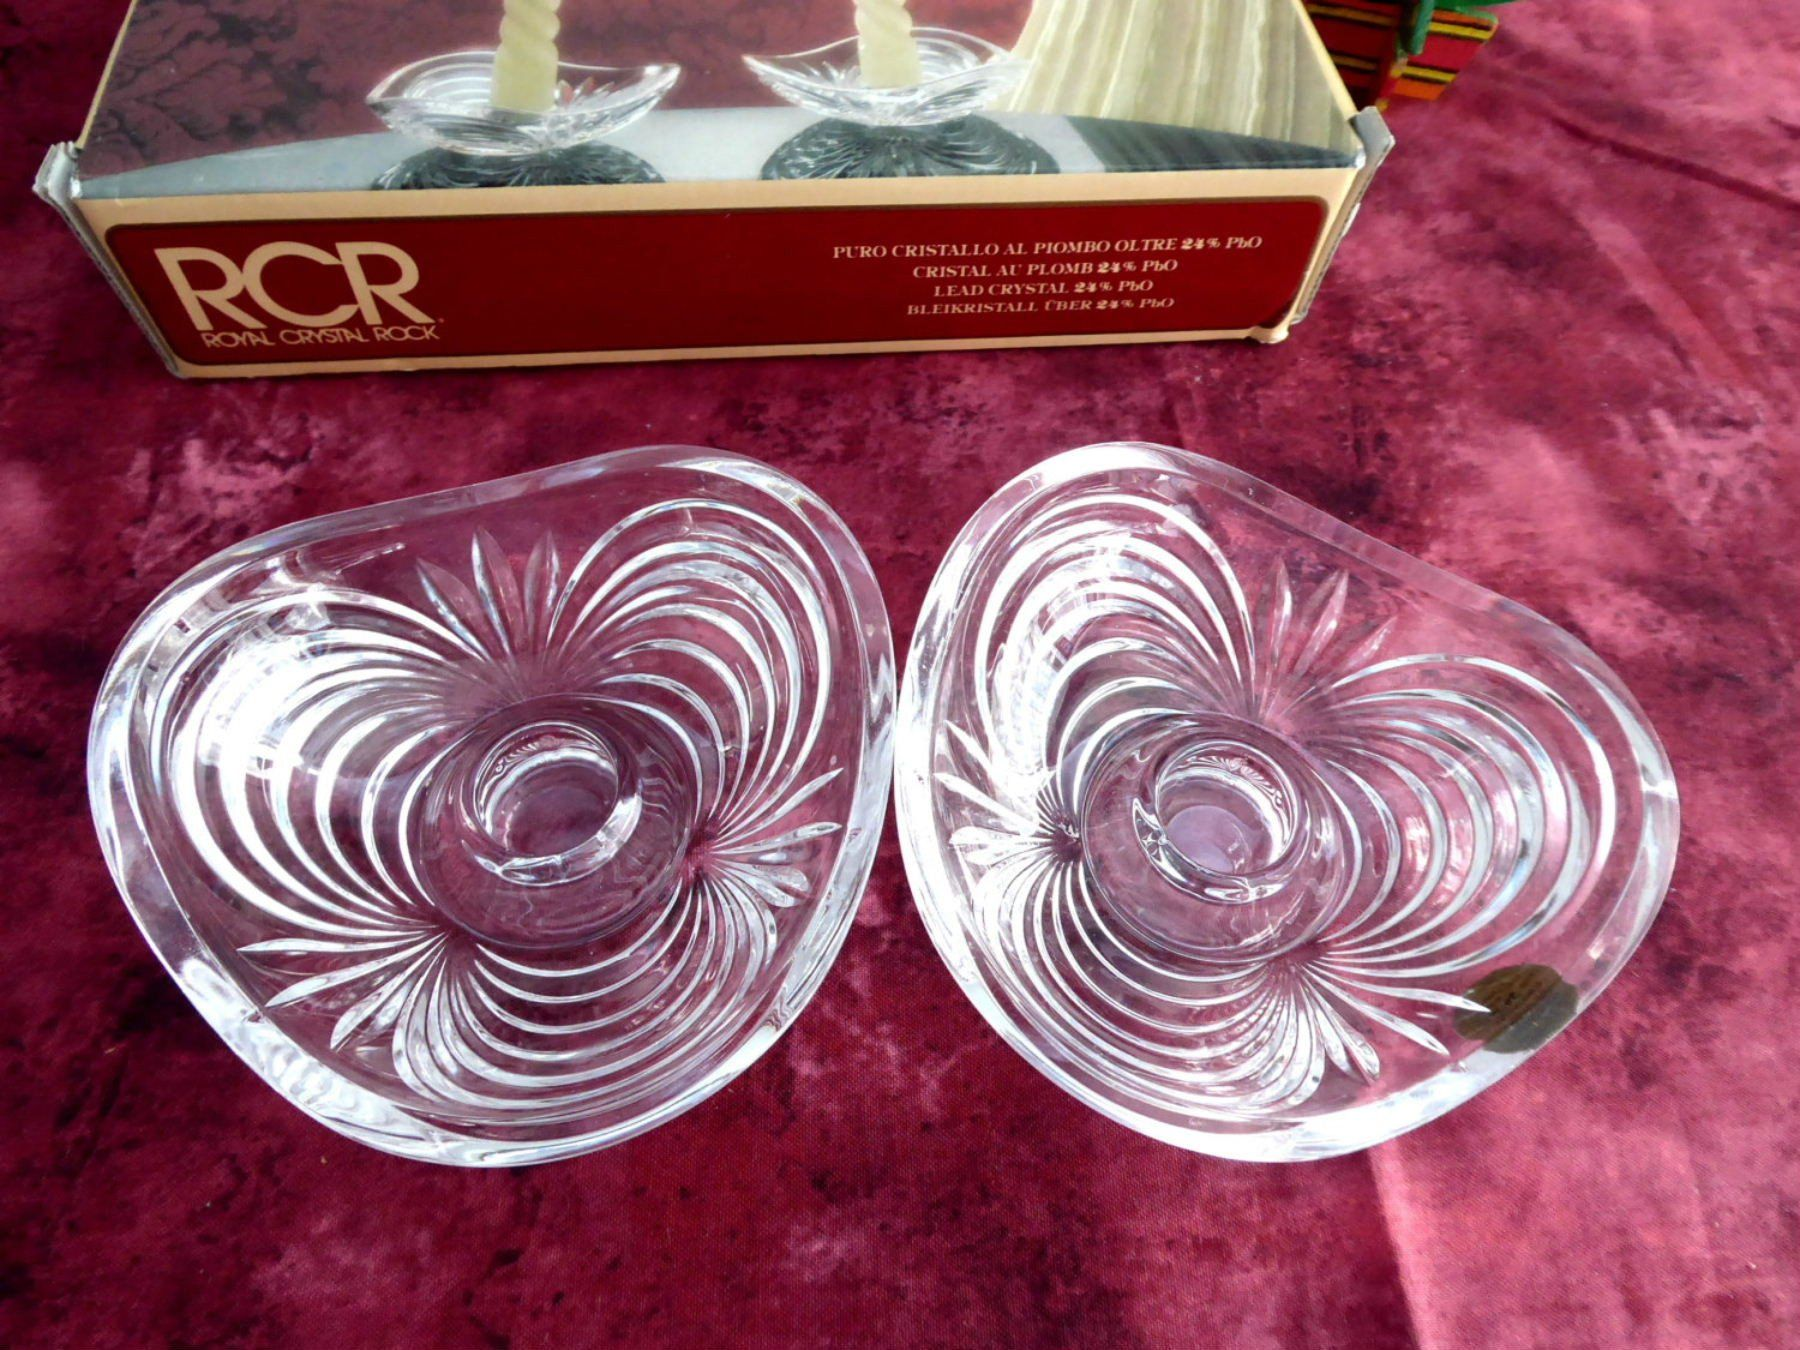 Pair Lead Crystal Candleholders Swirled Rcr Italy Vintage 1980s Dinner Party Boxed Lead Crystal Candle Holders Crystal Candle Holder